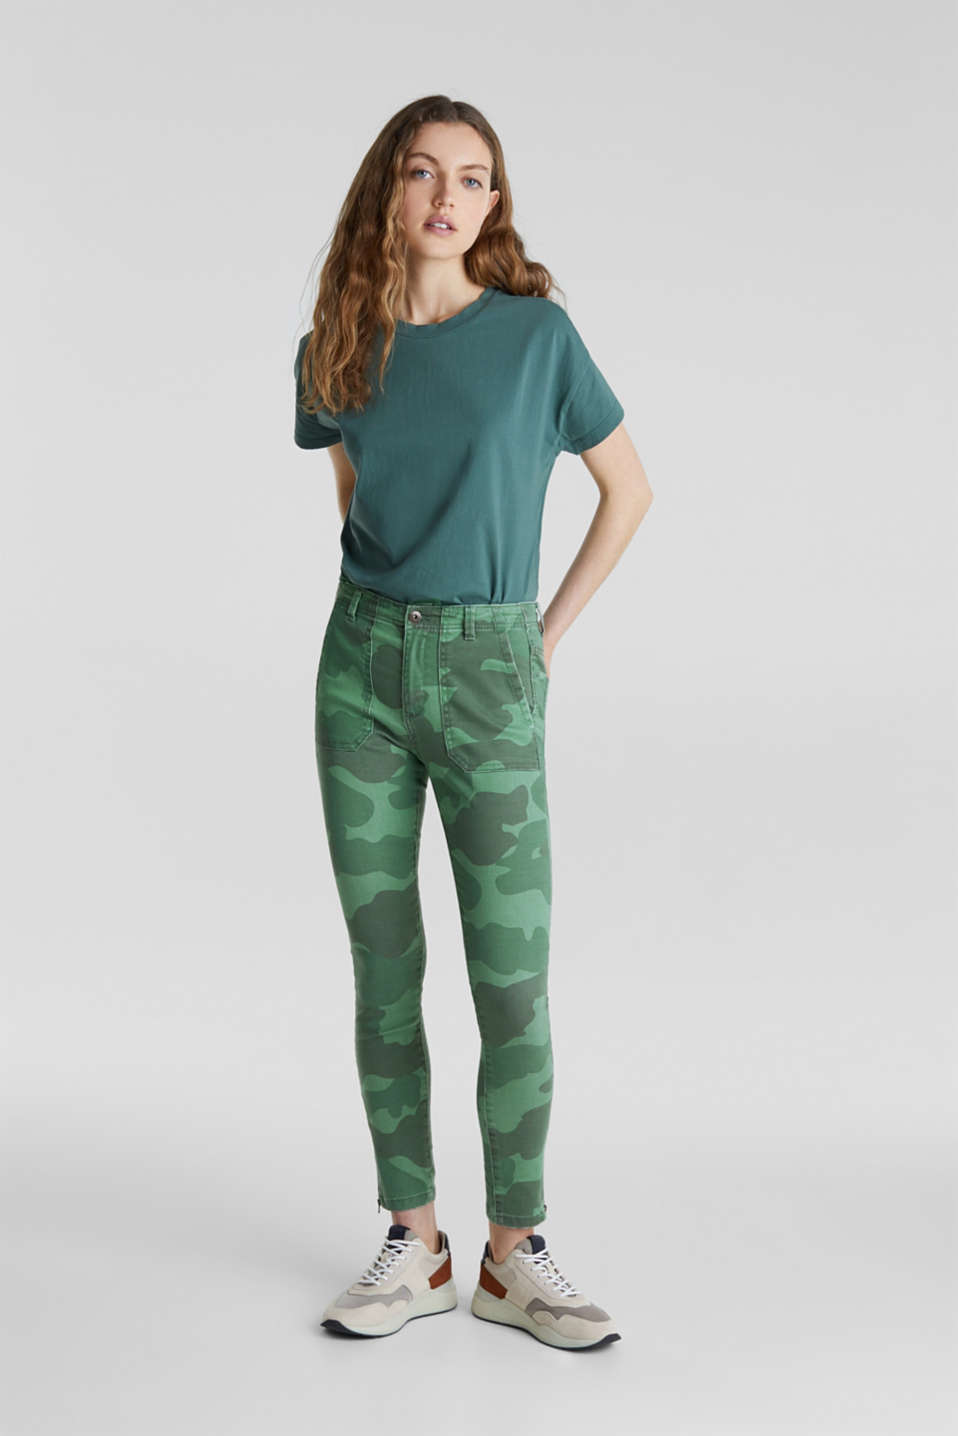 edc - Camouflage trousers with hem zips